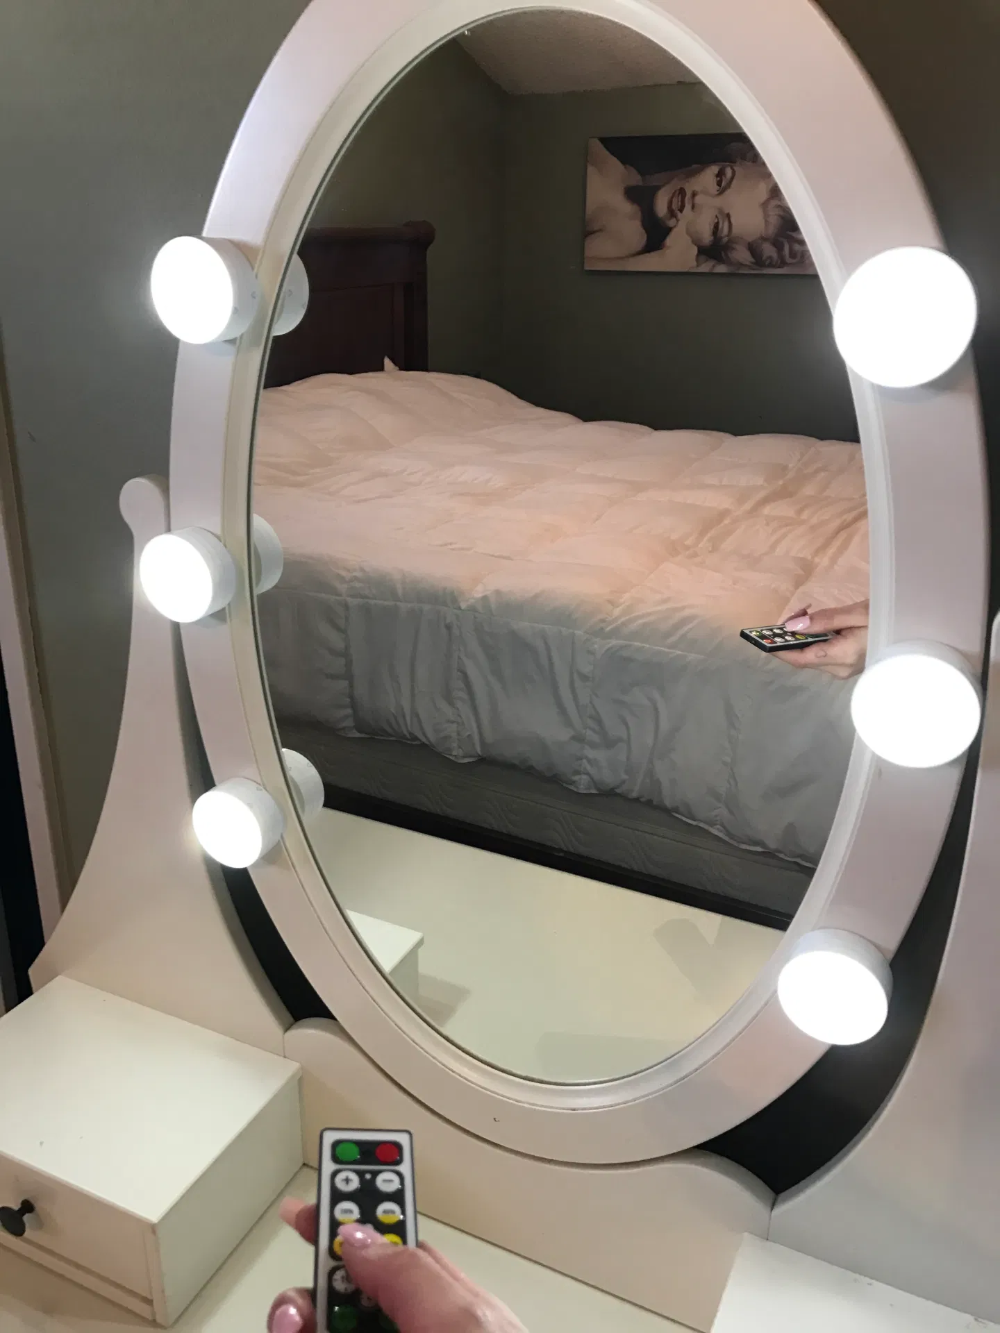 Diy Super Easy Remote Controlled Led Vanity Lights In 2020 Led Vanity Lights Diy Vanity Mirror Diy Vanity Lights